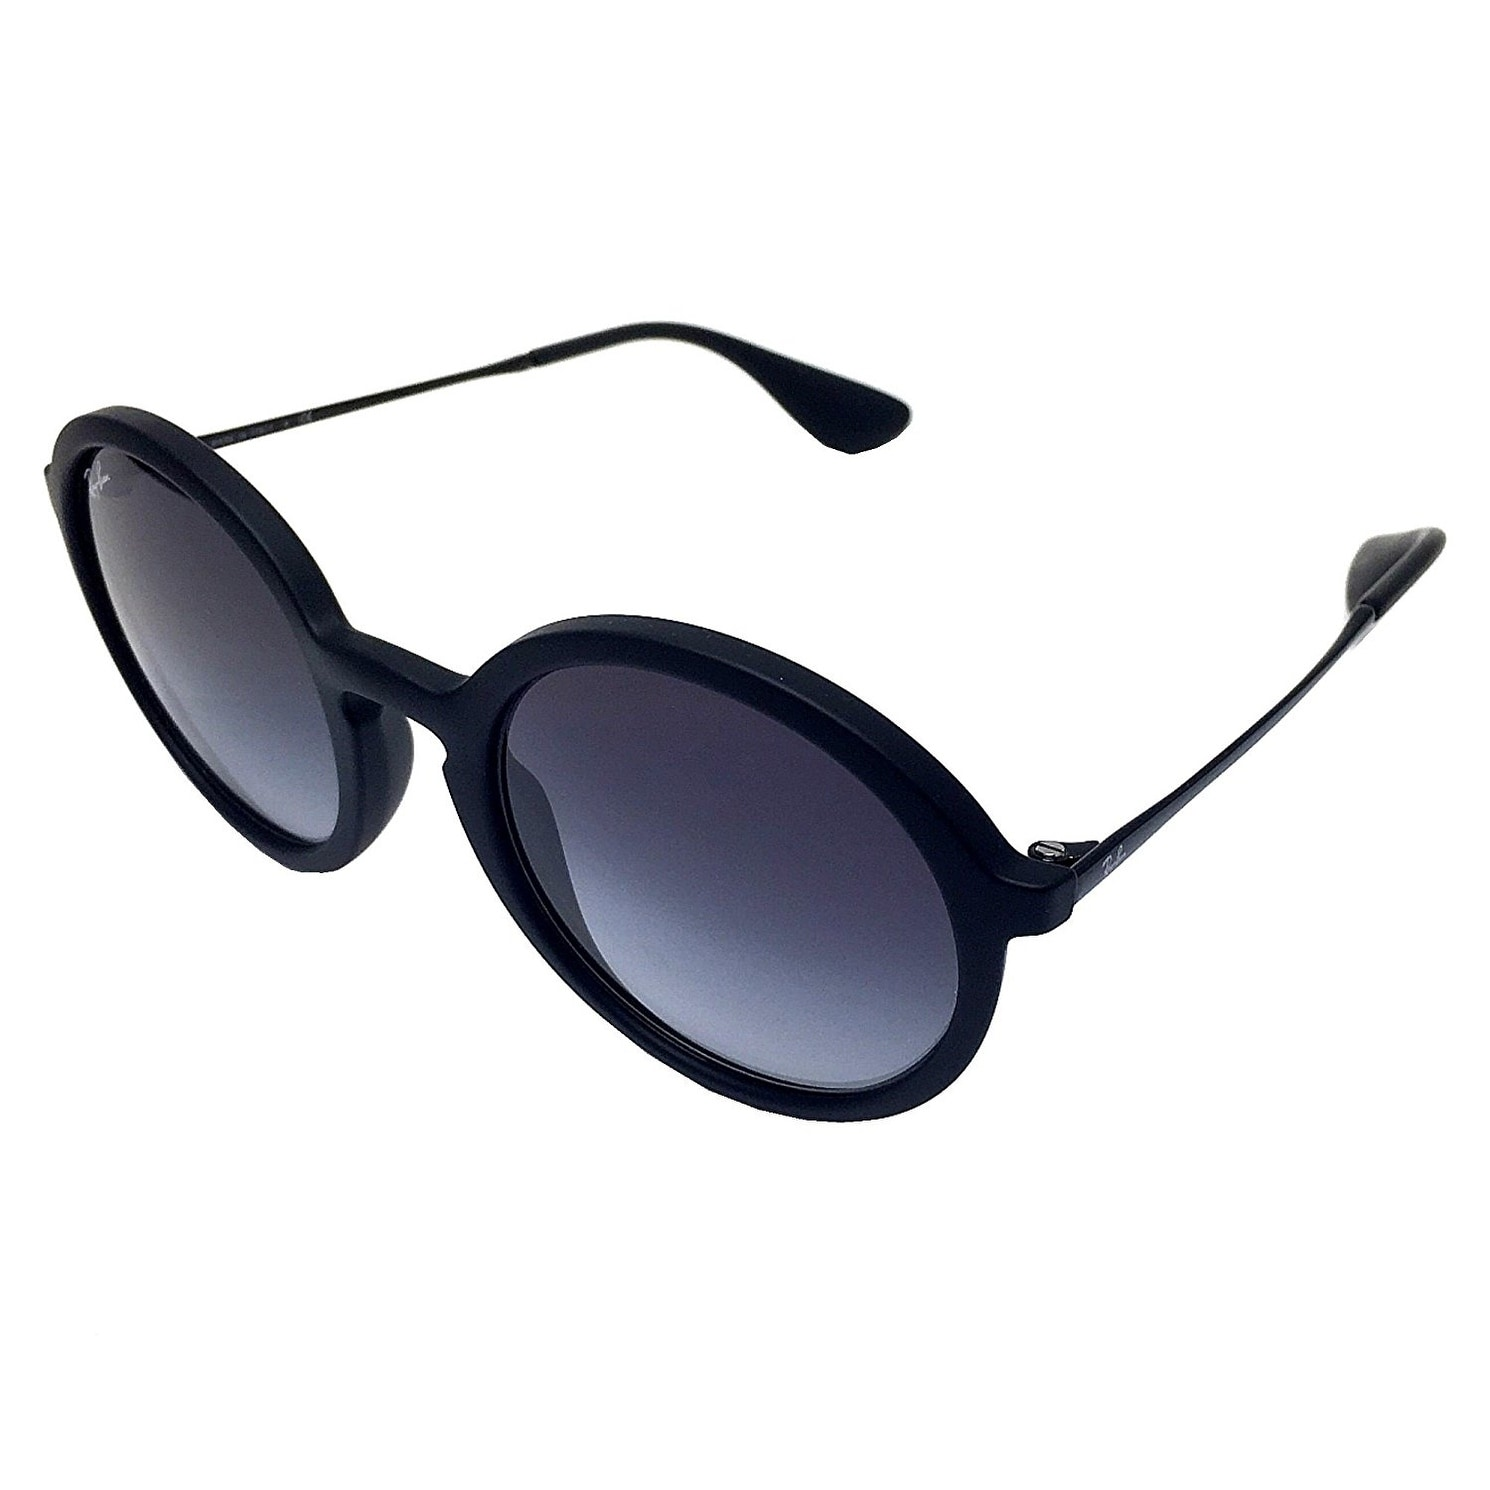 ce76d937ae Shop Ray-Ban Unisex RB4222 Black Frame Grey Gradient 50mm Lens Sunglasses -  Free Shipping Today - Overstock.com - 17754375